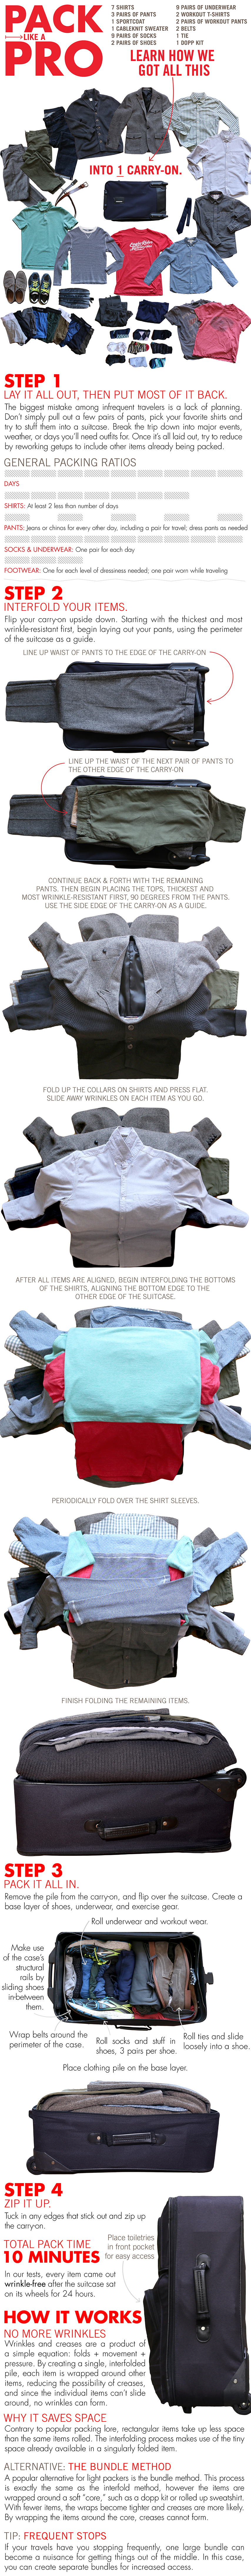 The best way to pack a suitcase Pack Like a Pro How We Got All This in ONE Carry-on